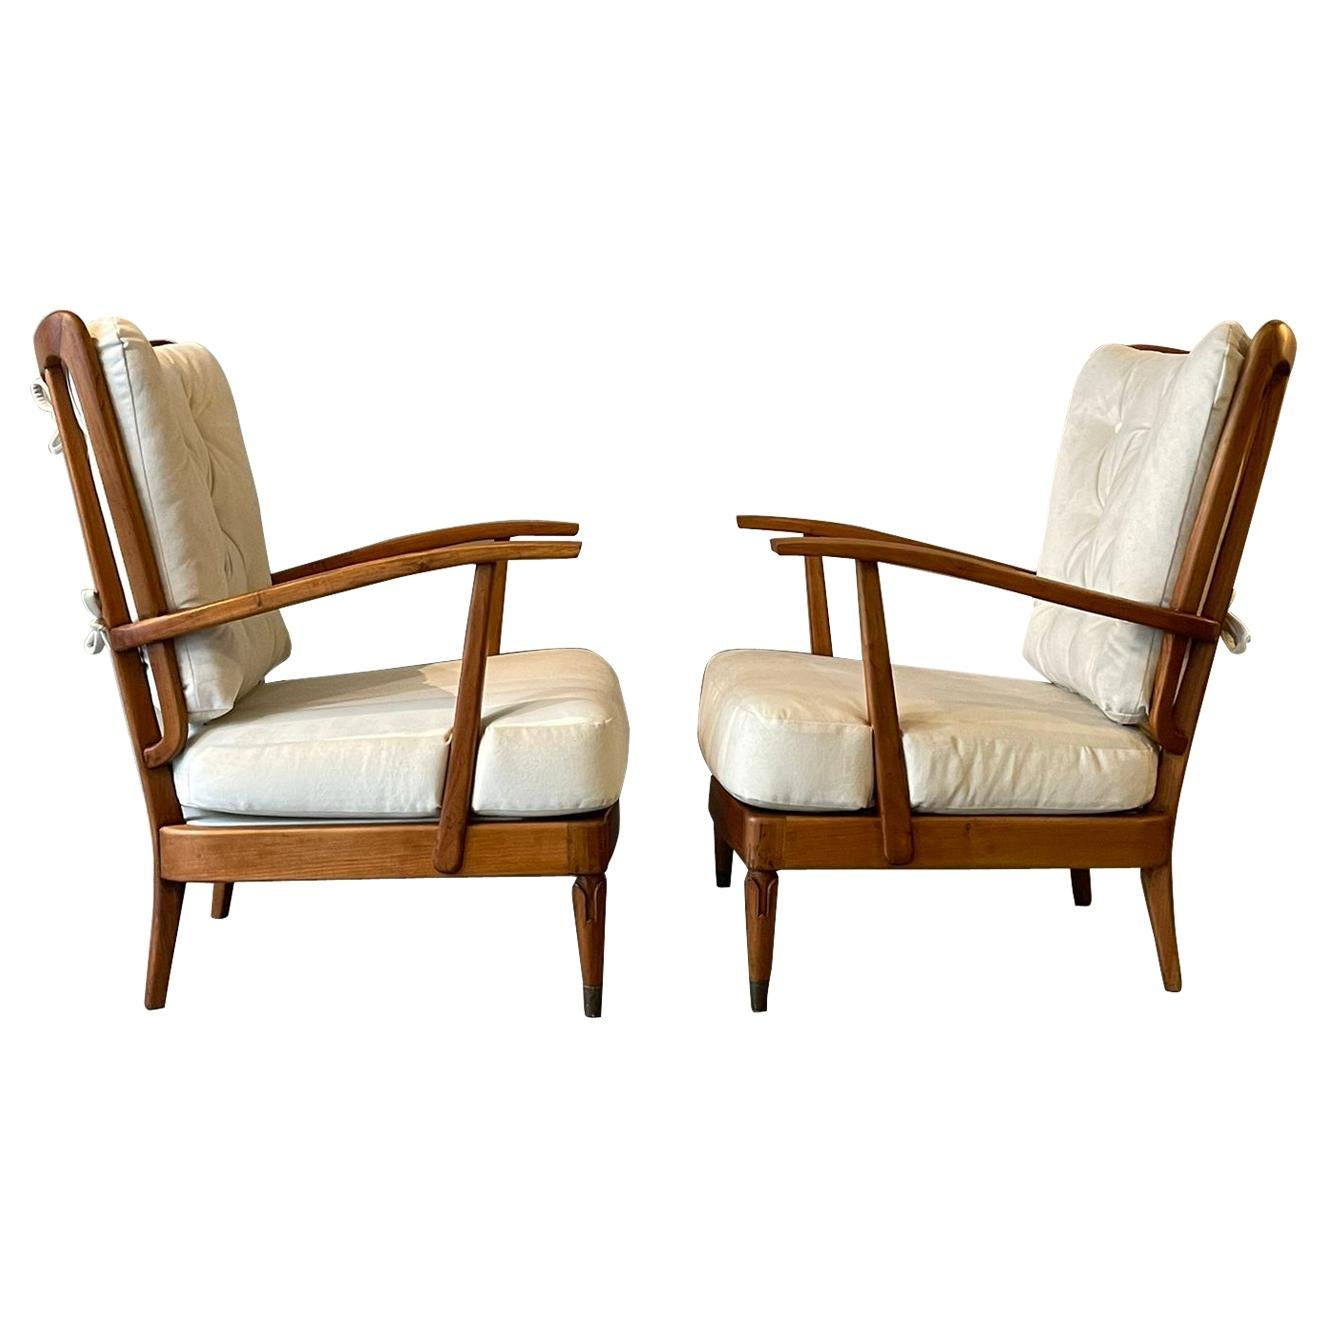 Paolo Buffa Cantù Pair of Armchairs Cherry Wood White Backrest, Italy, 1950